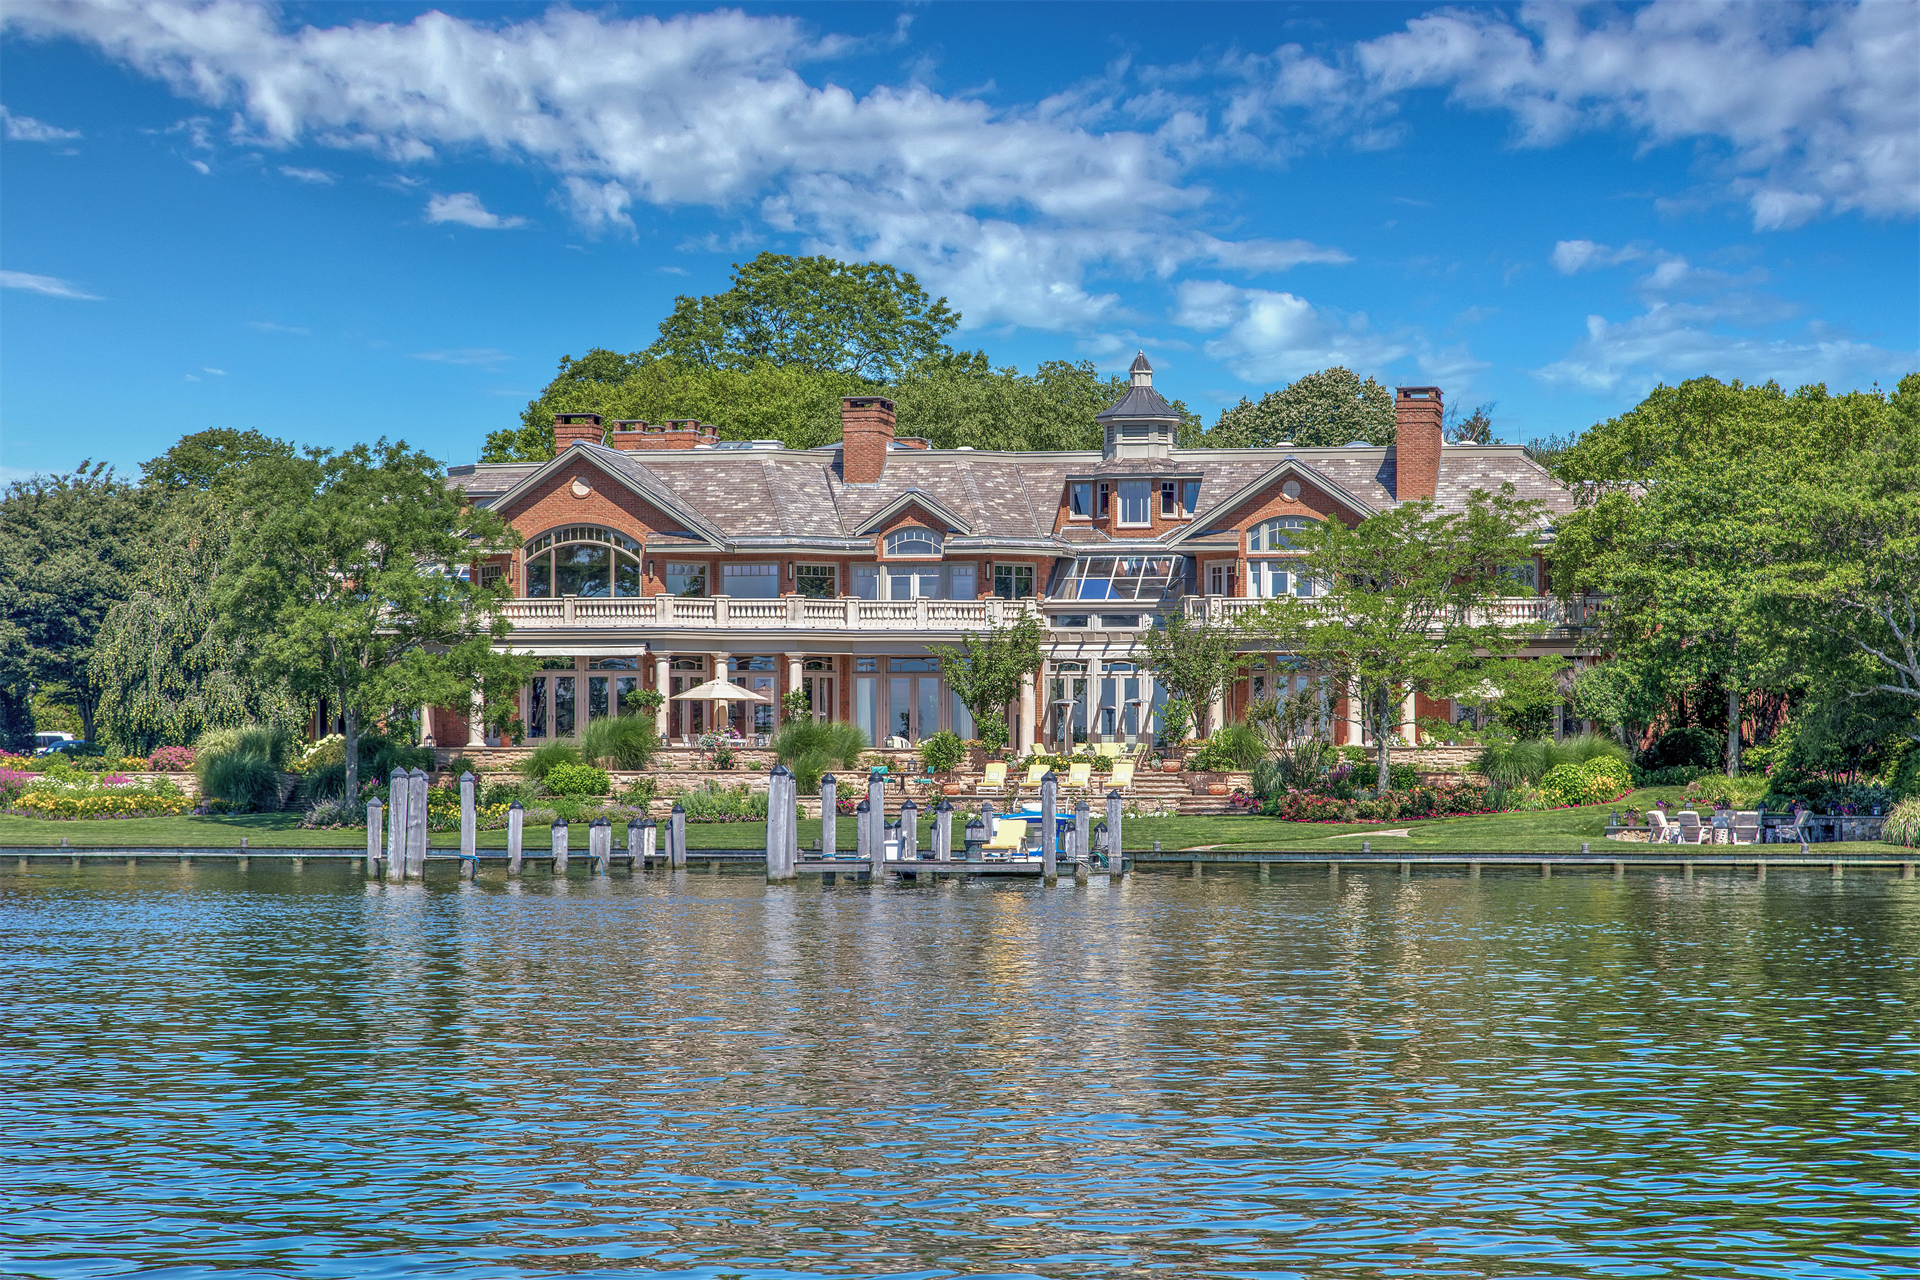 Estate for Sale at Sui Generis on the Manasquan River 818 Linden Lane Brielle, New Jersey,08730 United States